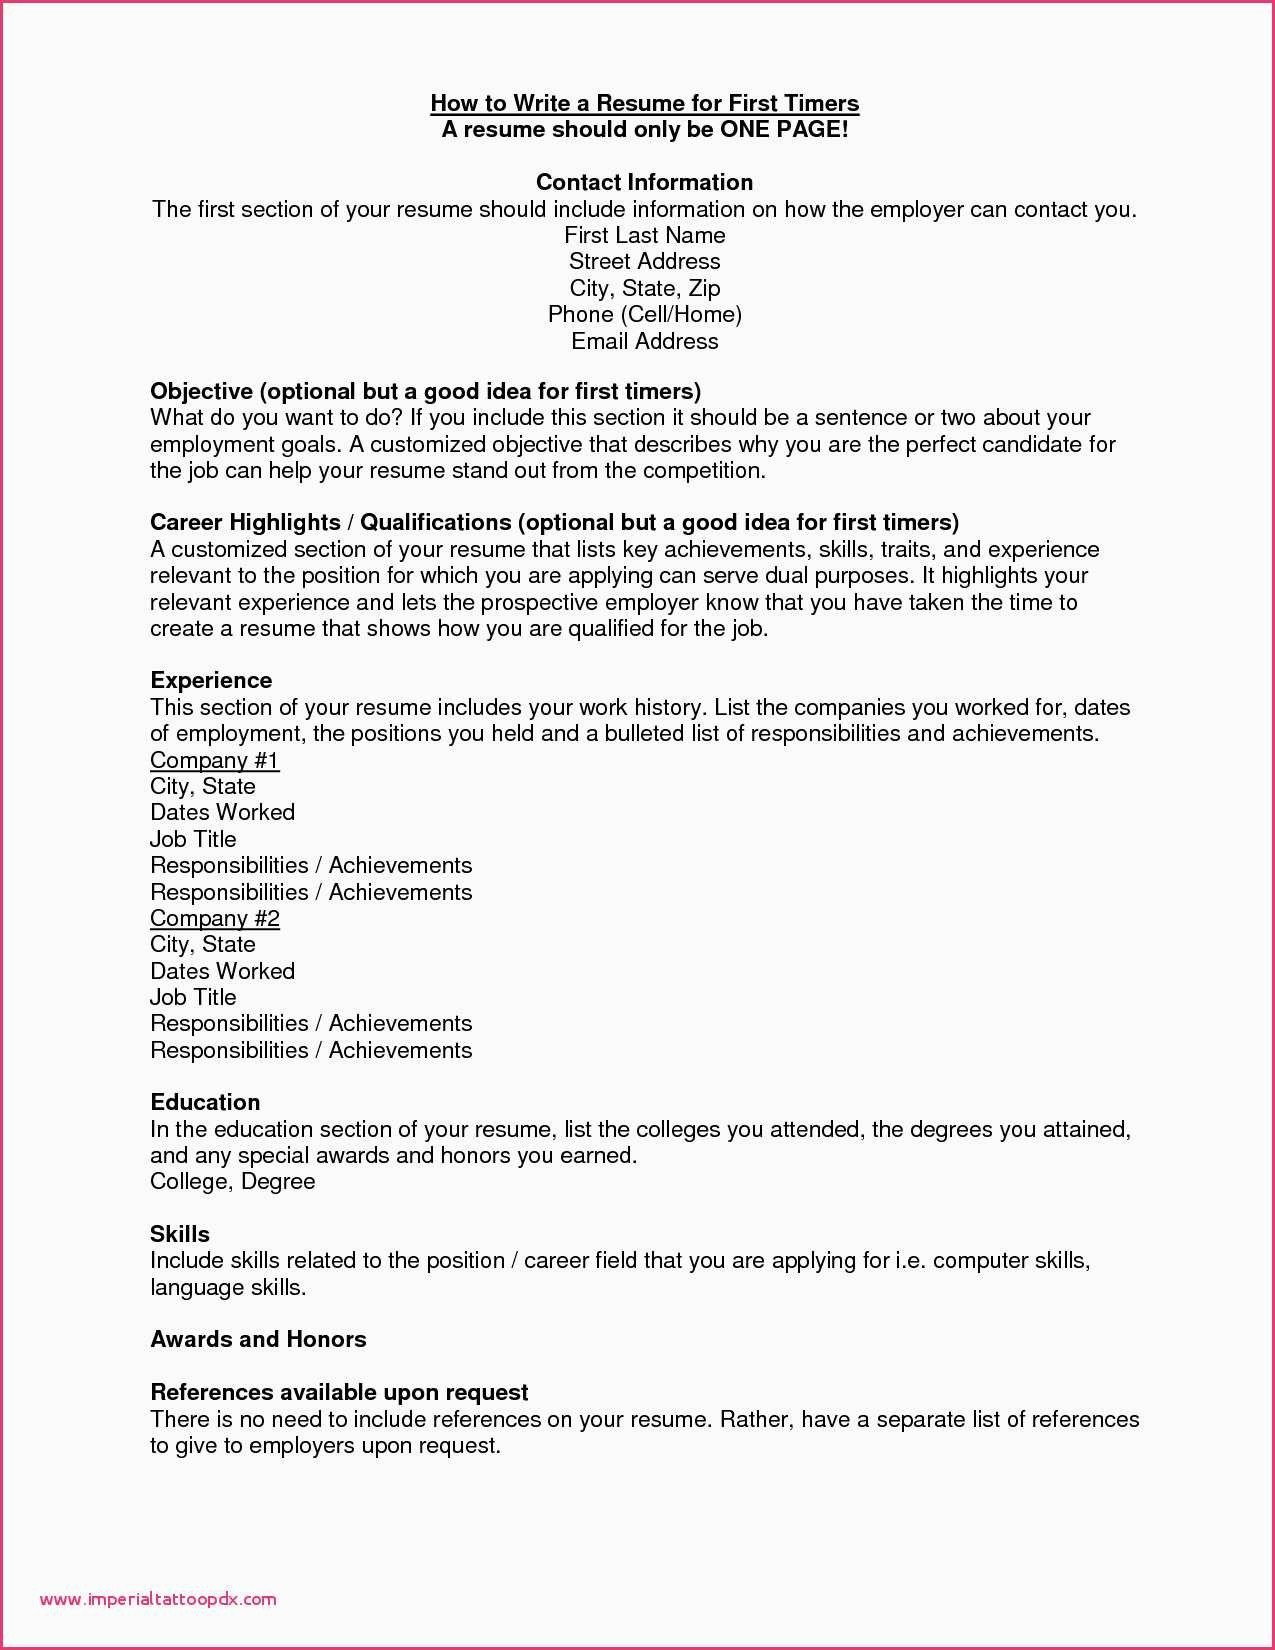 Should You Put Scholarships On Resume Best Of List Skills to Put A Resume  Examples Awesome Image in 2020 | Resume examples, Resume tips, Resume